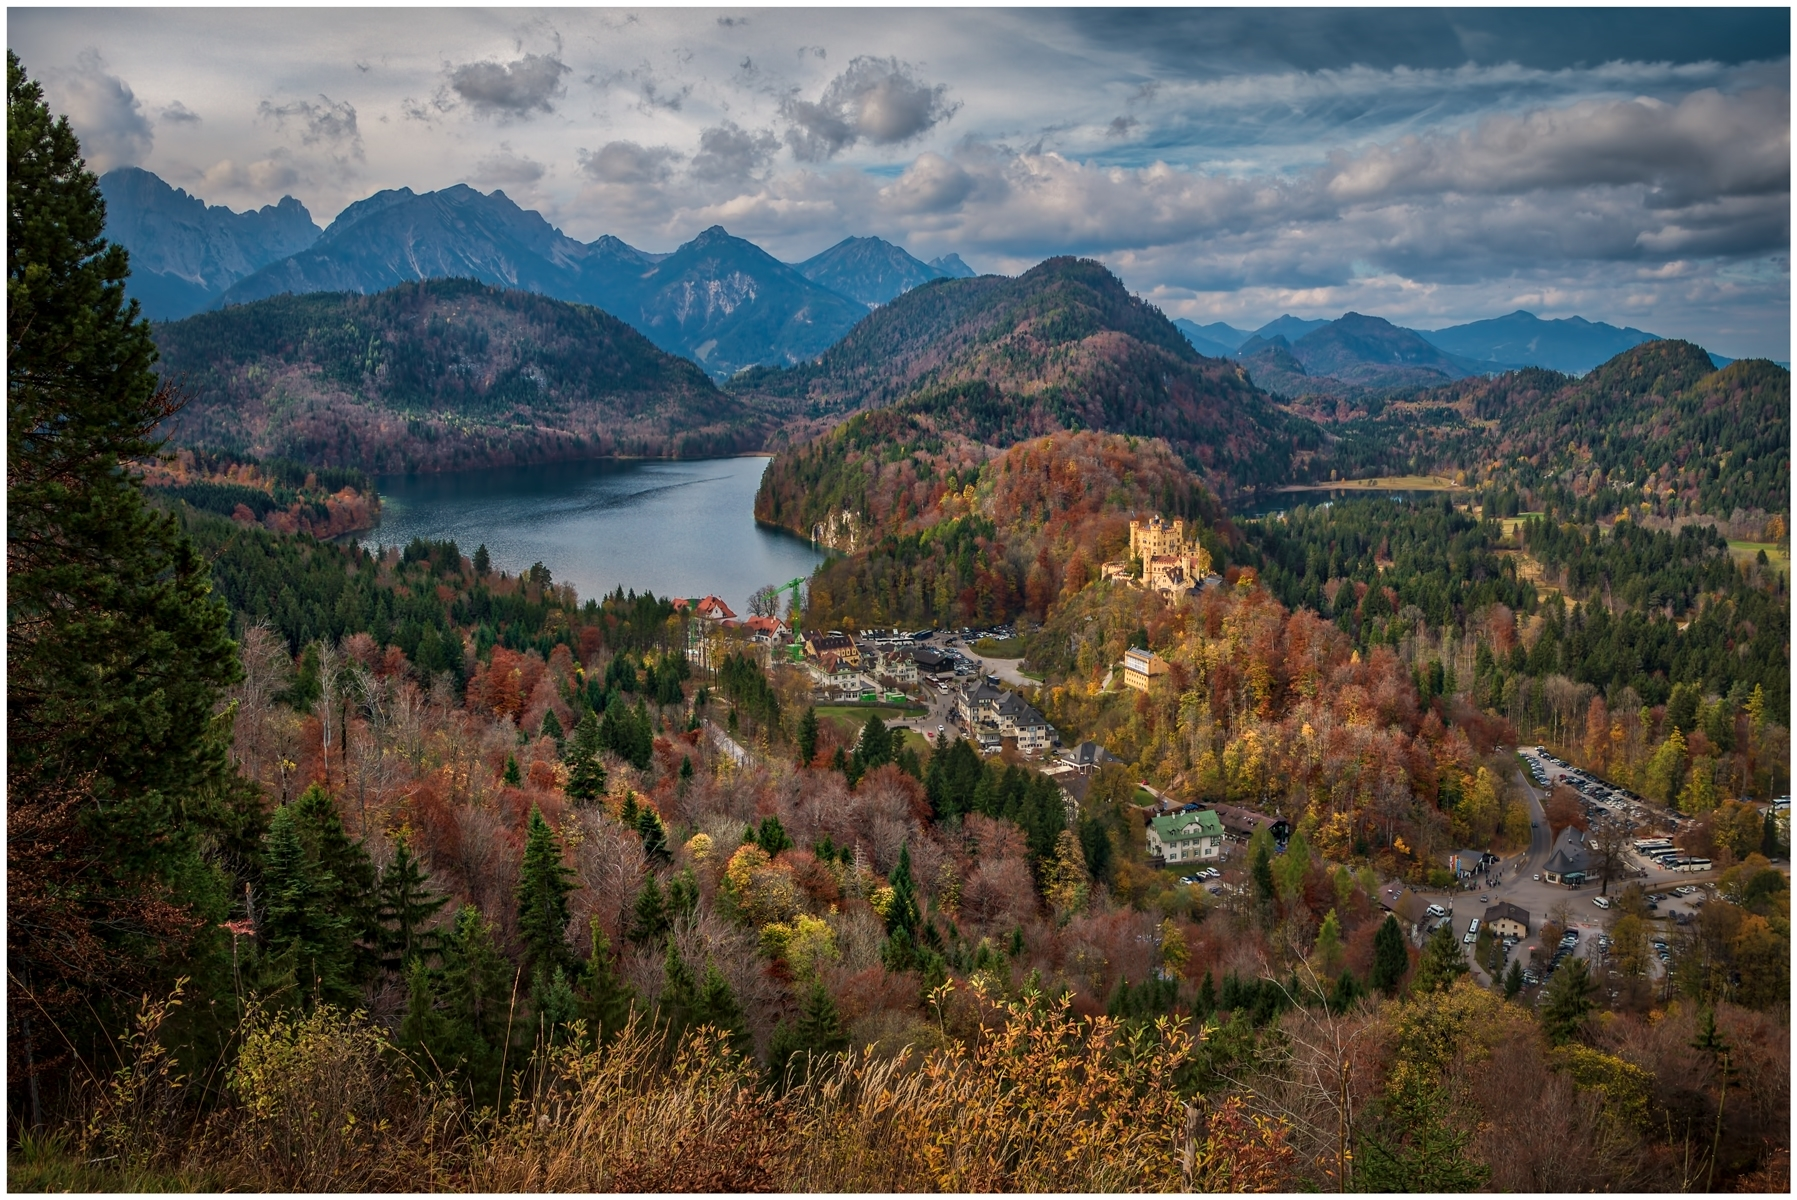 Germanys-Hohenschwangau-Castle-Lake-Alpsee-and-the-Austrian-Alps-in-the-distance-PA-1-Place-by-Barry-Zupan-LV